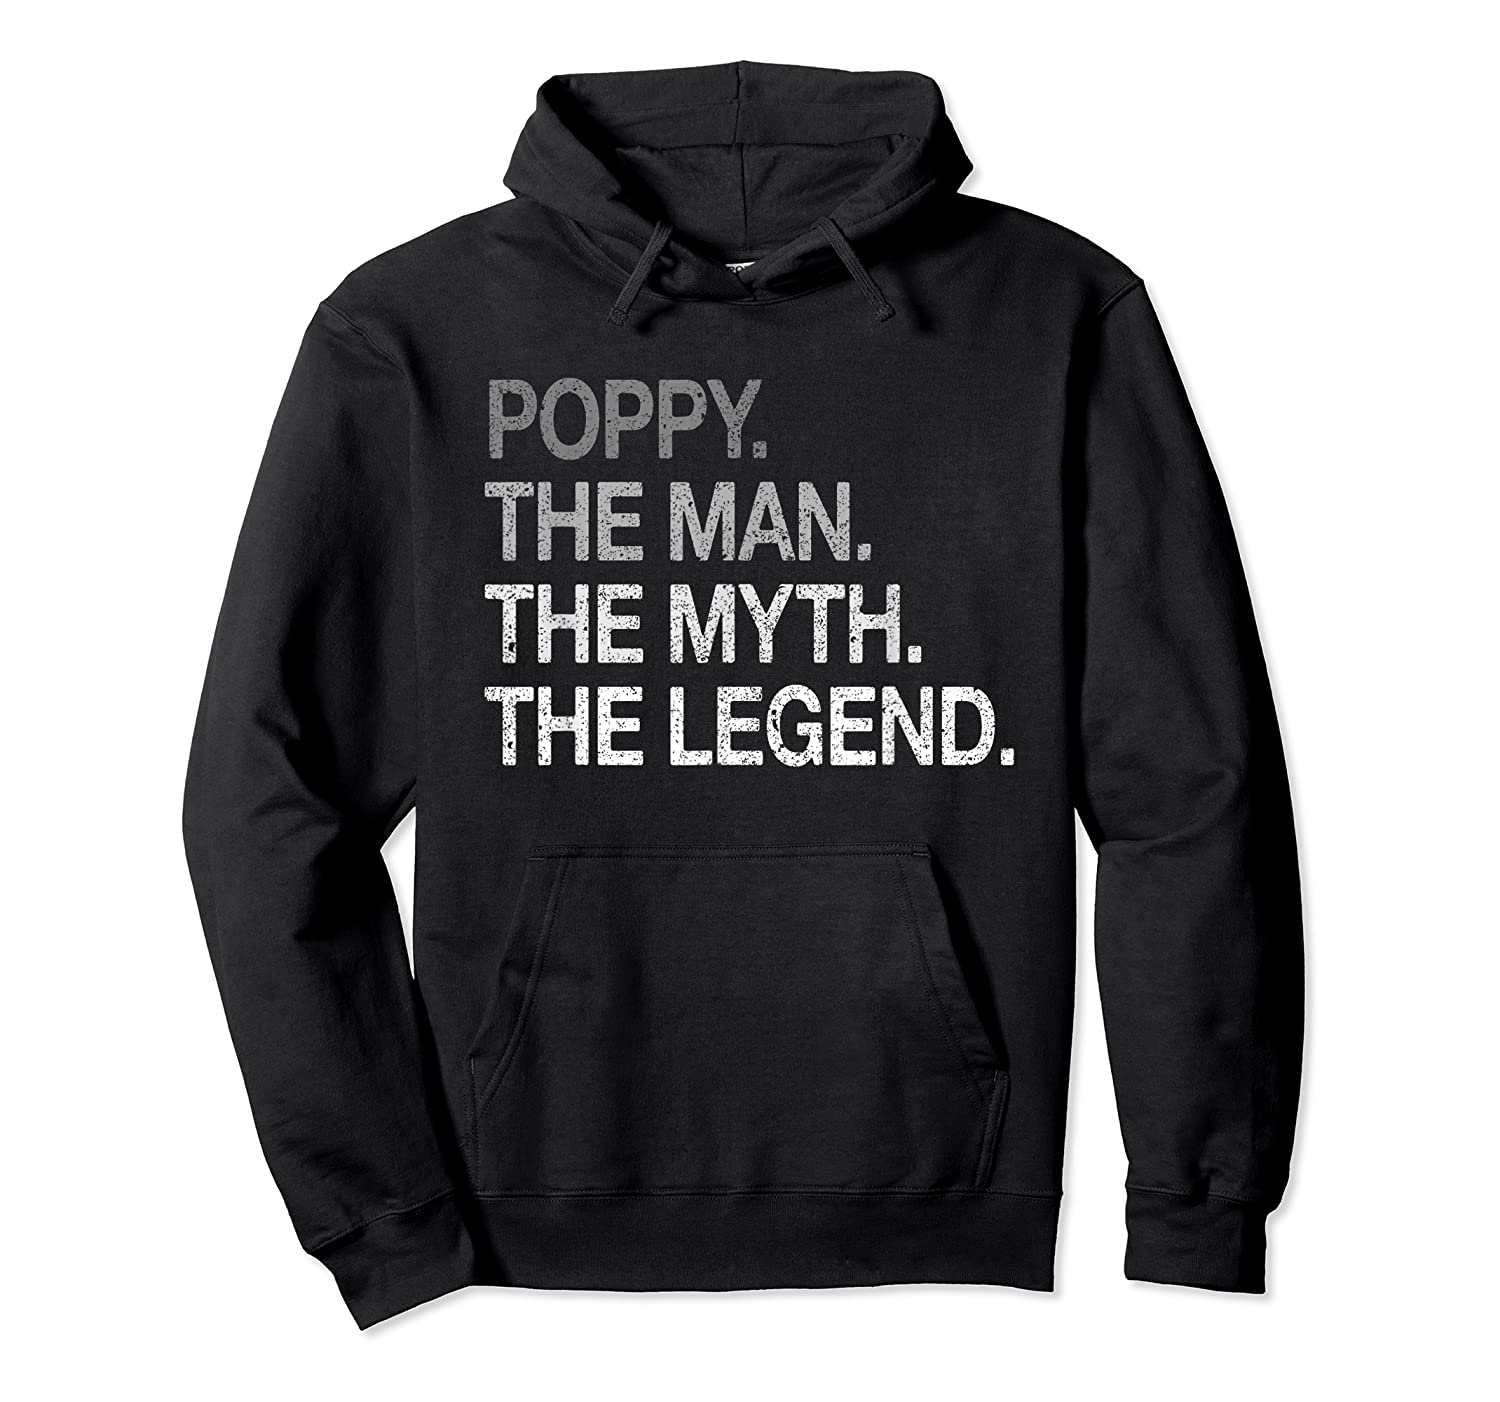 S Poppy The Man The Myth The Legend T-shirt For Grandpa Unisex Pullover Hoodie